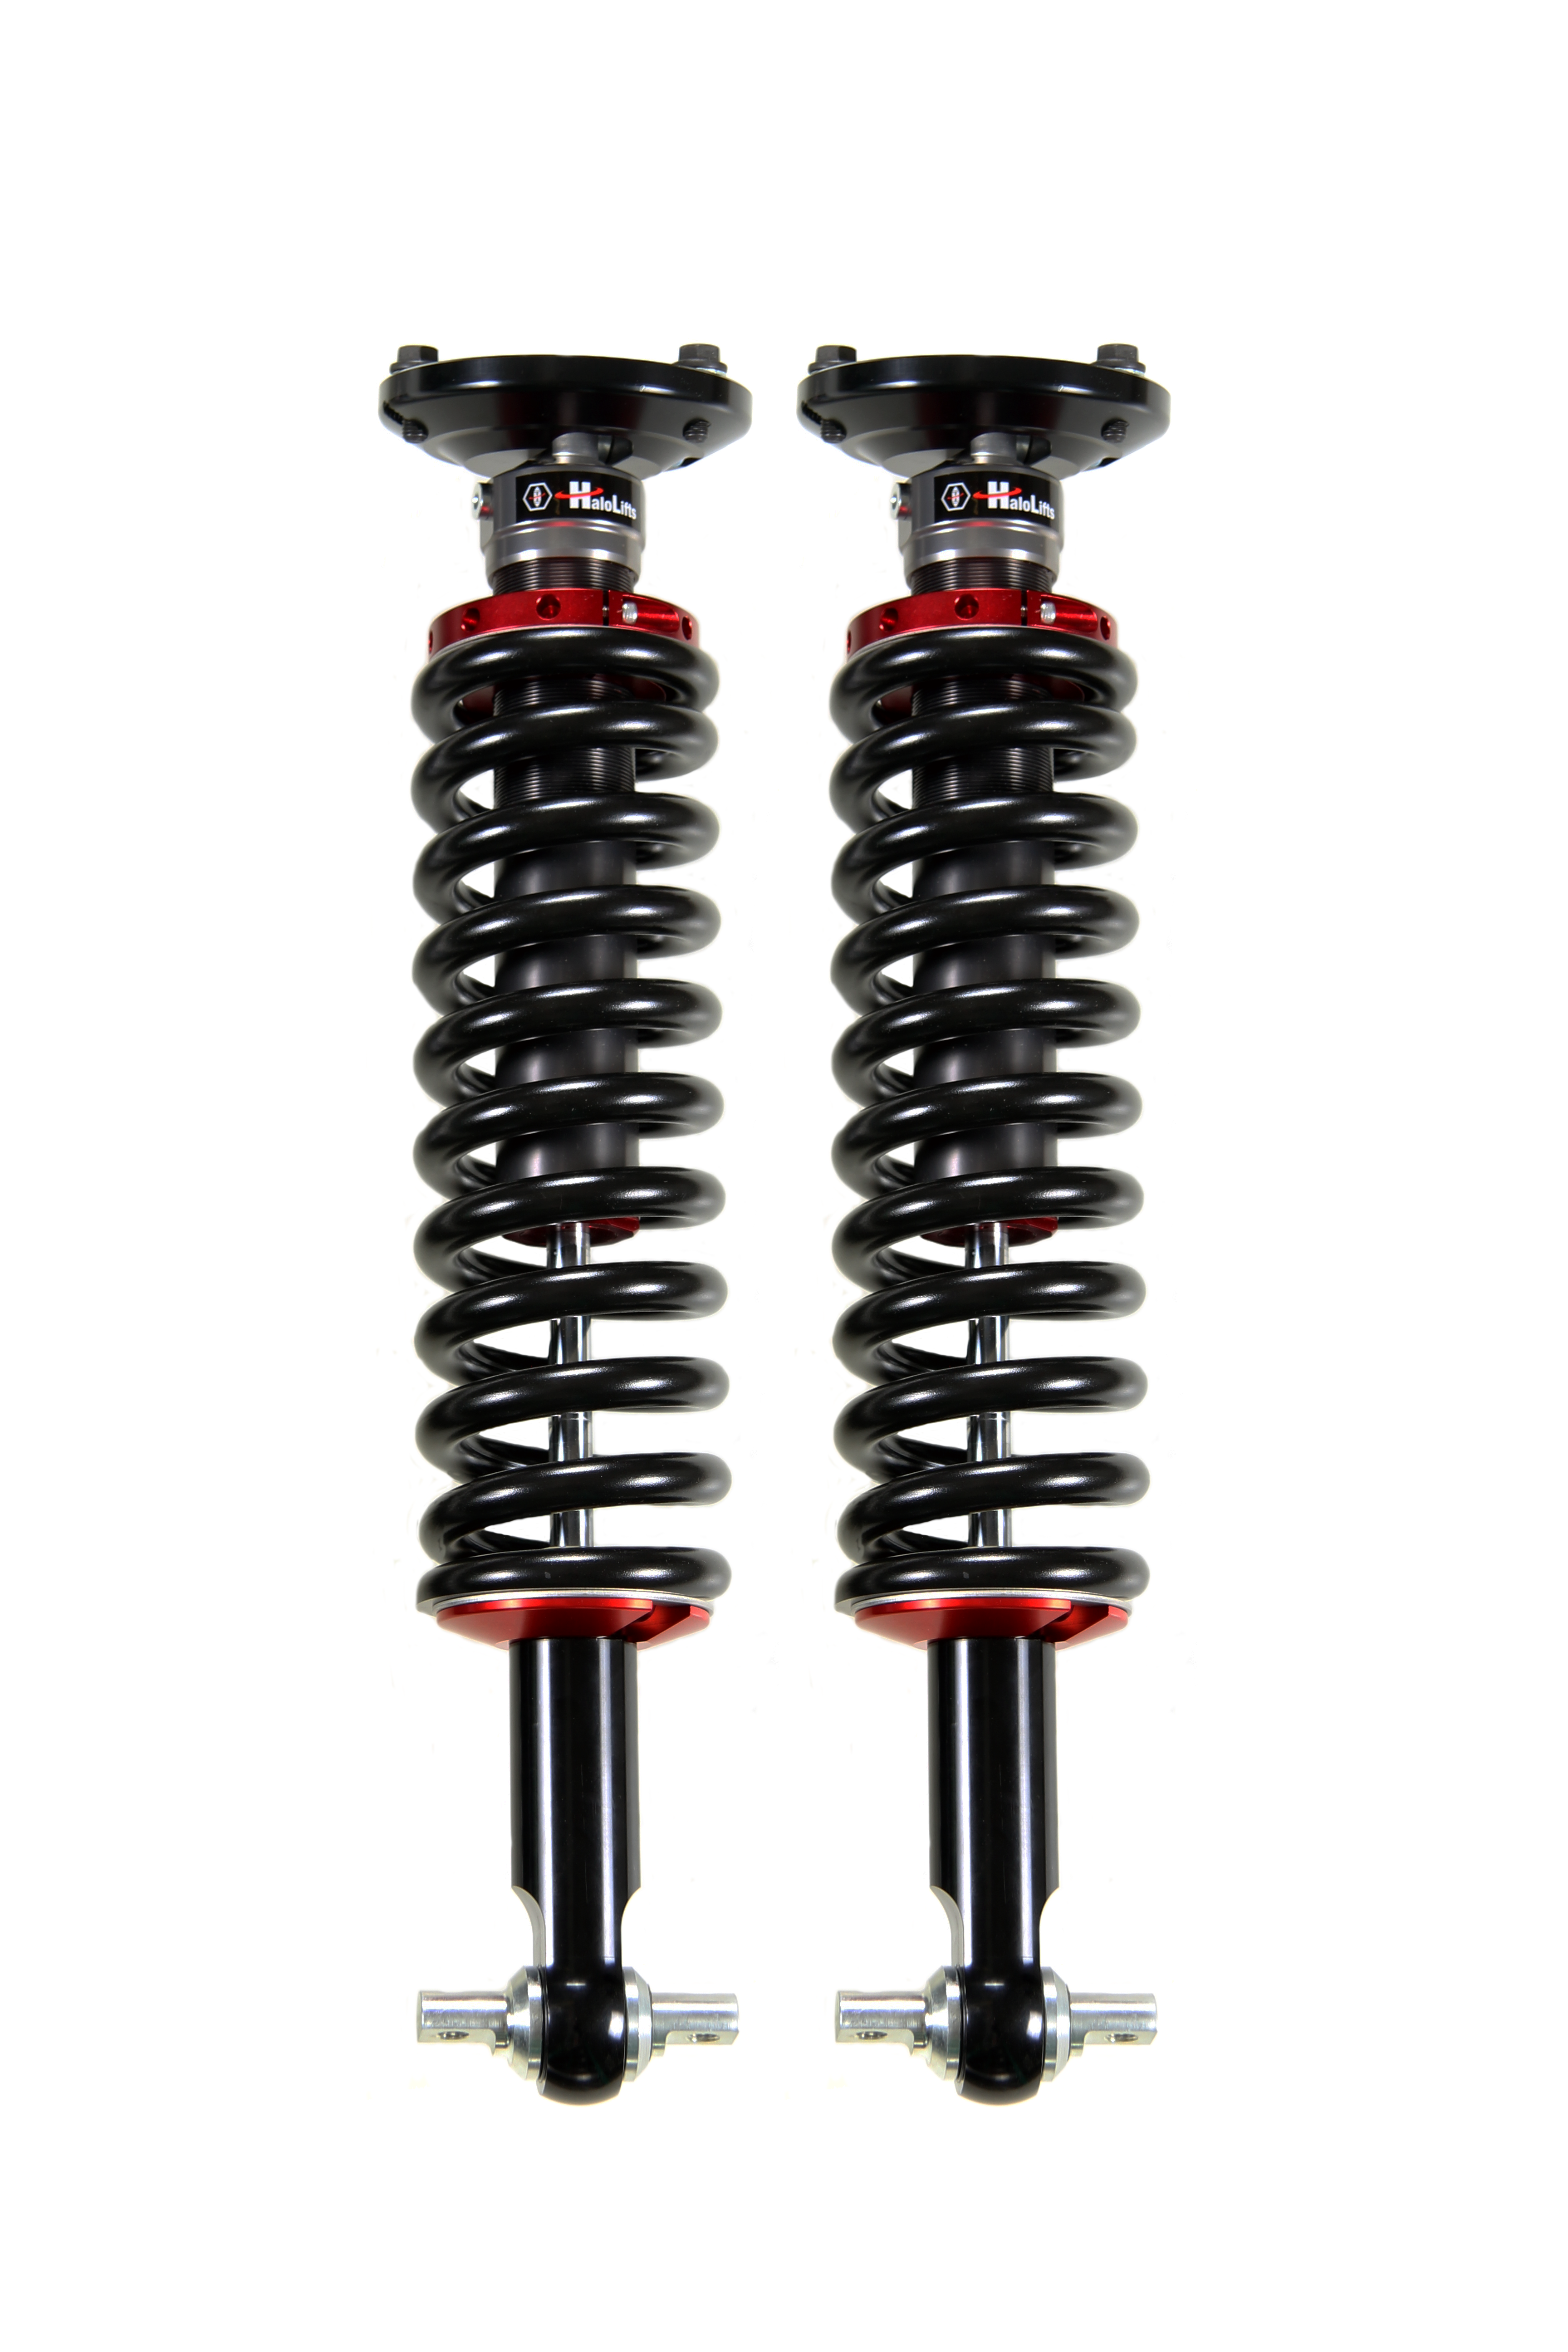 HaloLifts Boss Aluma 2 0 Coilovers Fits F150 14-Current